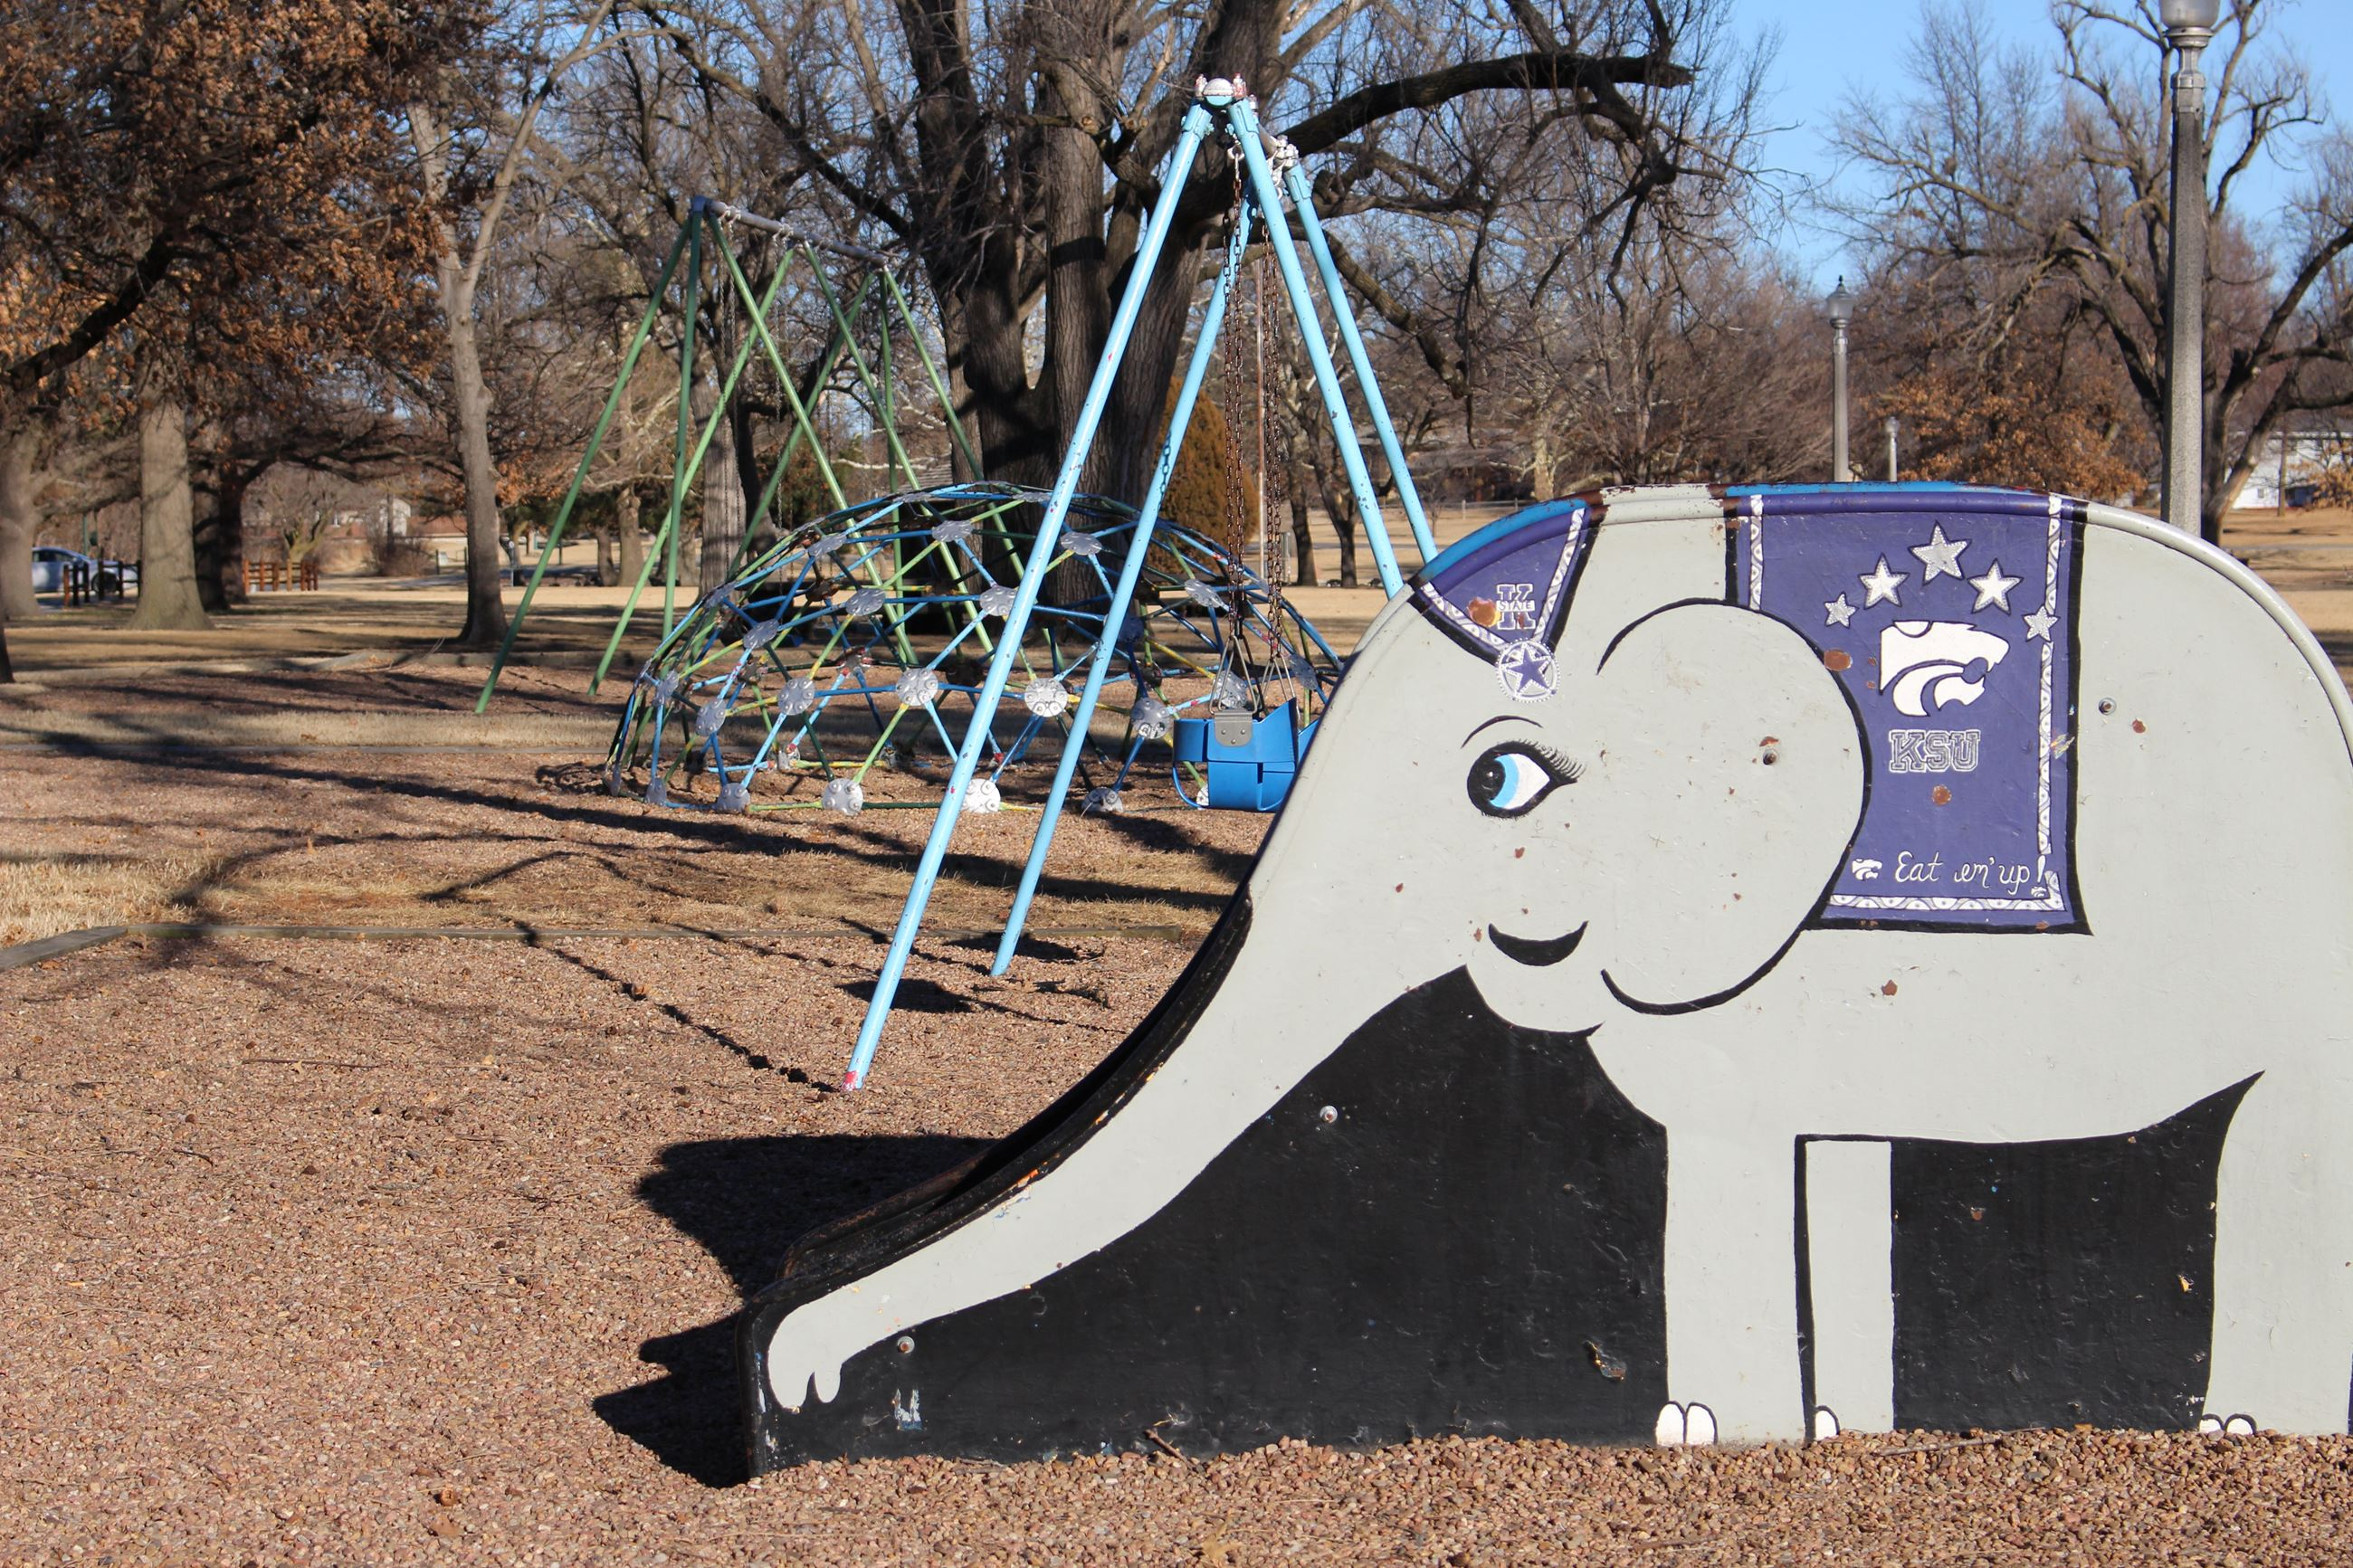 Lakeside Park has a playground featuring a slide that looks like an elephant.